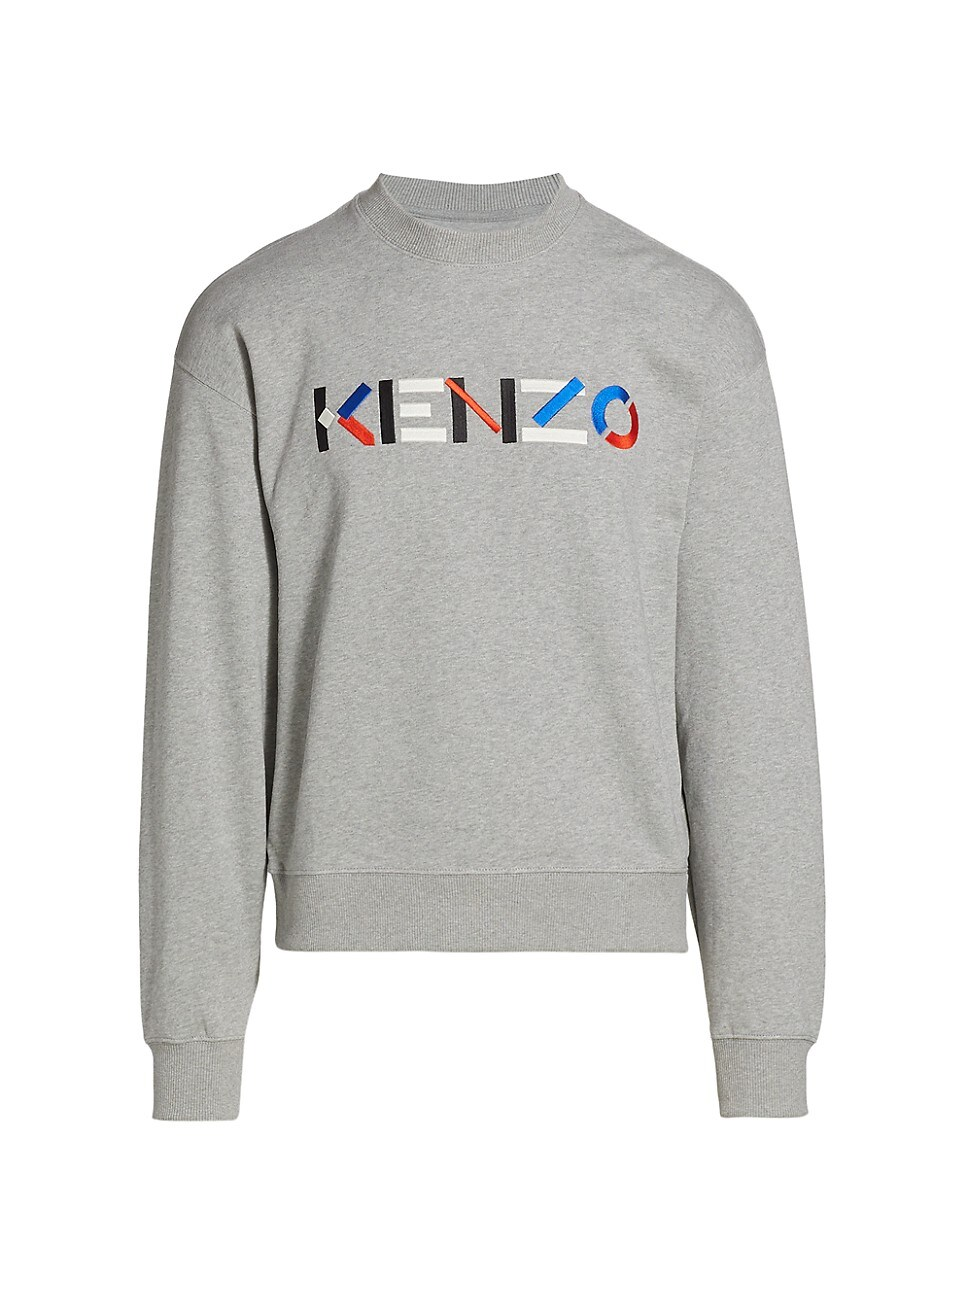 Kenzo MEN'S MULTICOLOR LOGO SWEATSHIRT